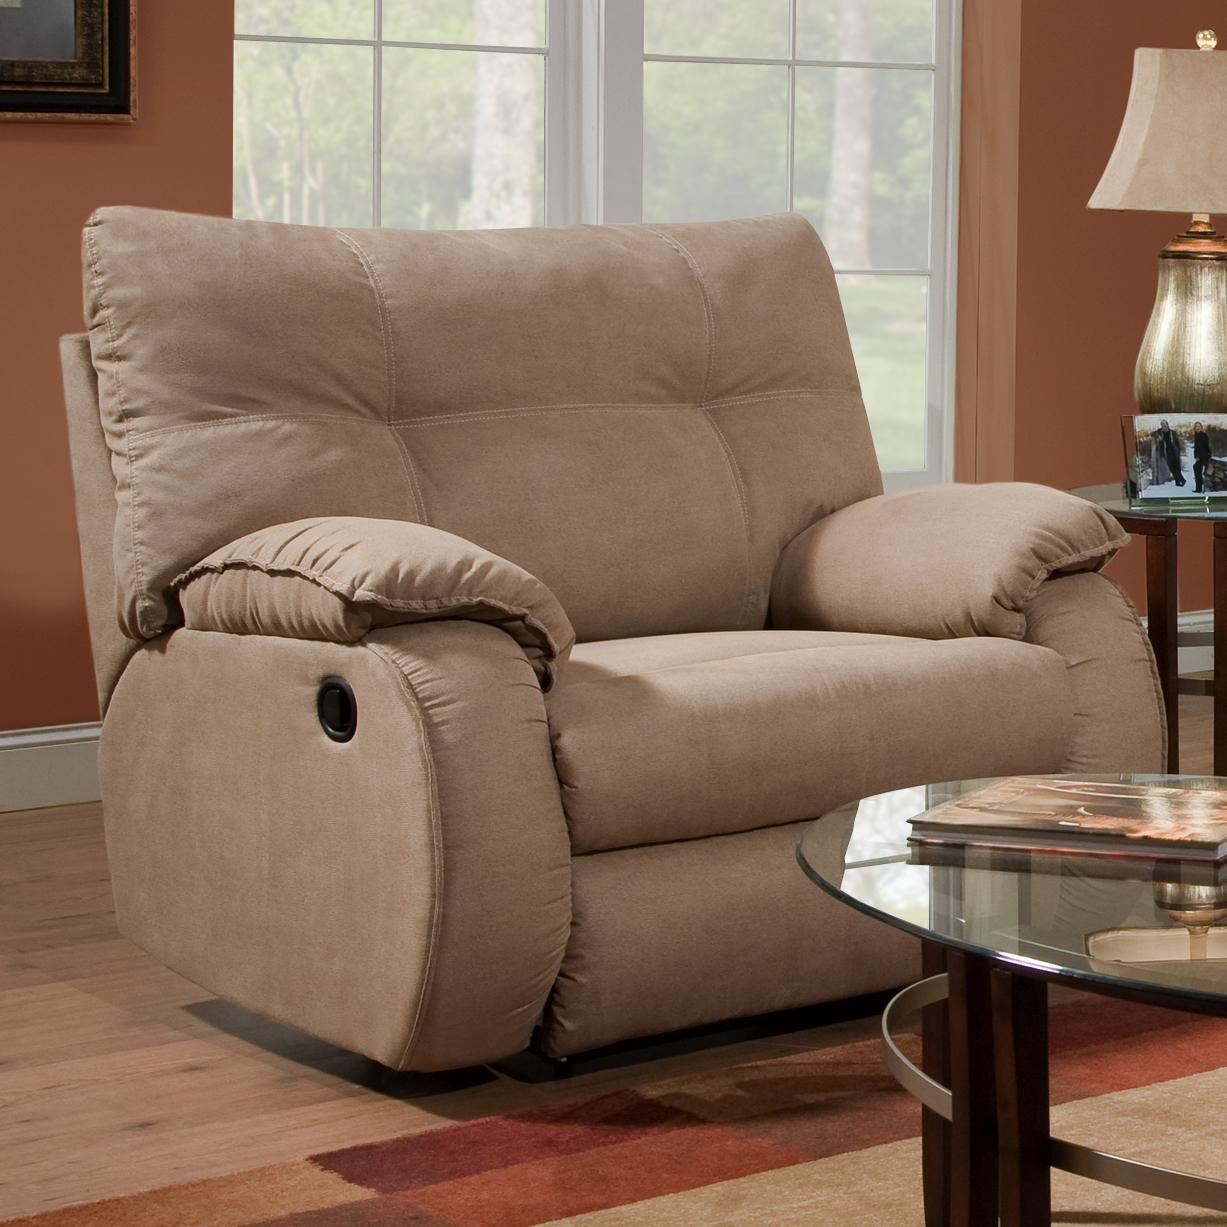 Dodger Plush Chair and a Half Recliner by Southern Motion. Available at  Turk Furniture. - Dodger Plush Chair And A Half Recliner By Southern Motion